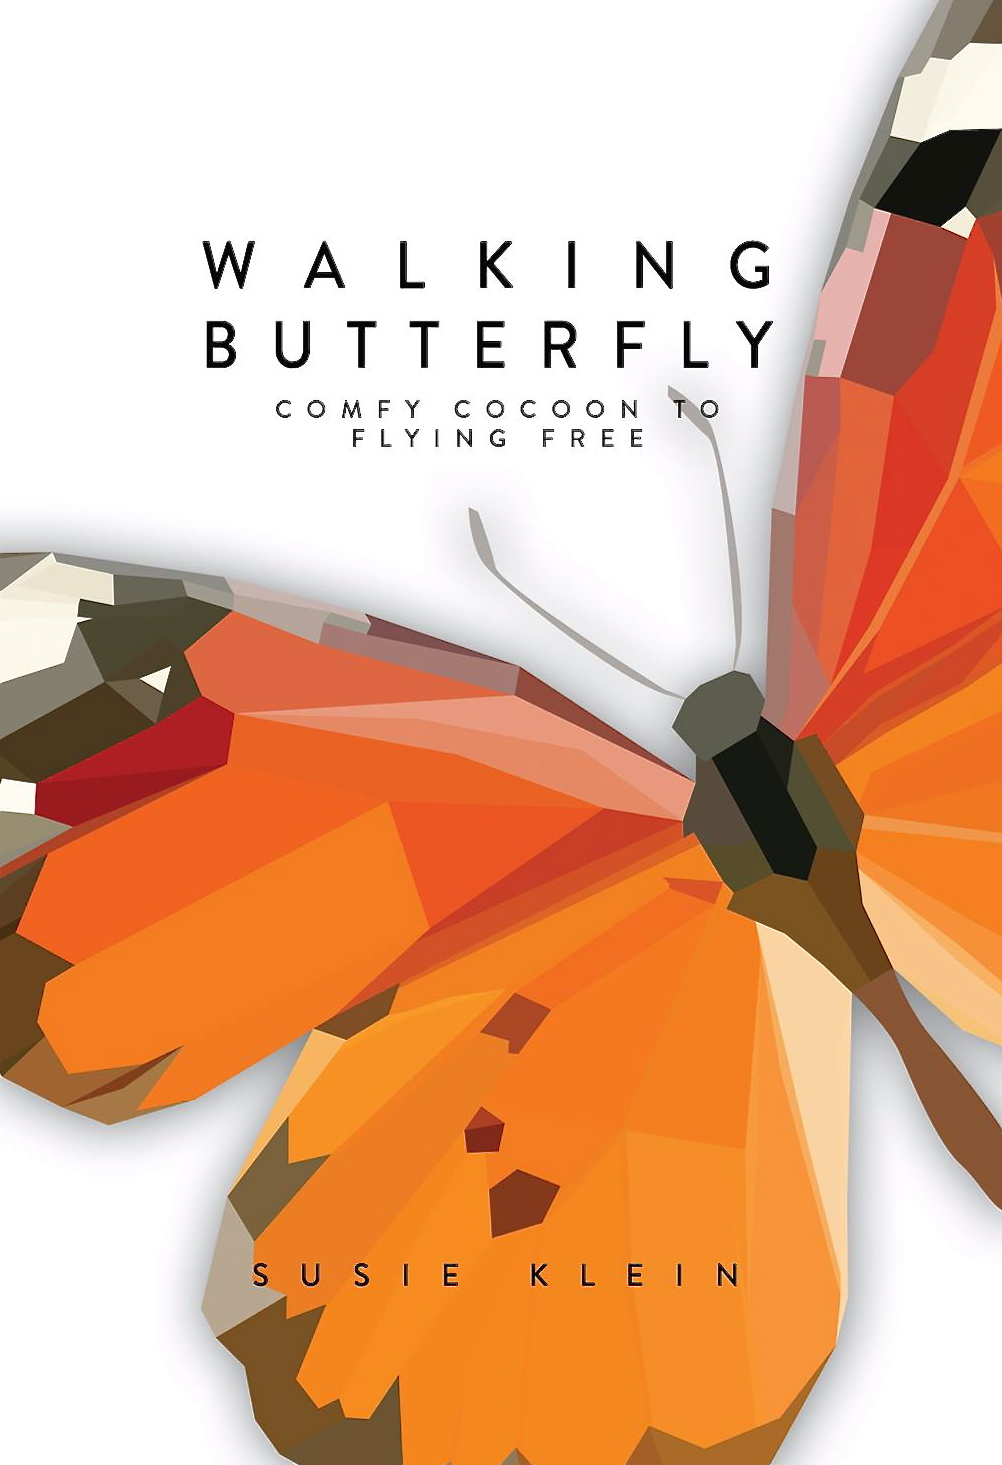 WALKING BUTTERFLY on amazon.com